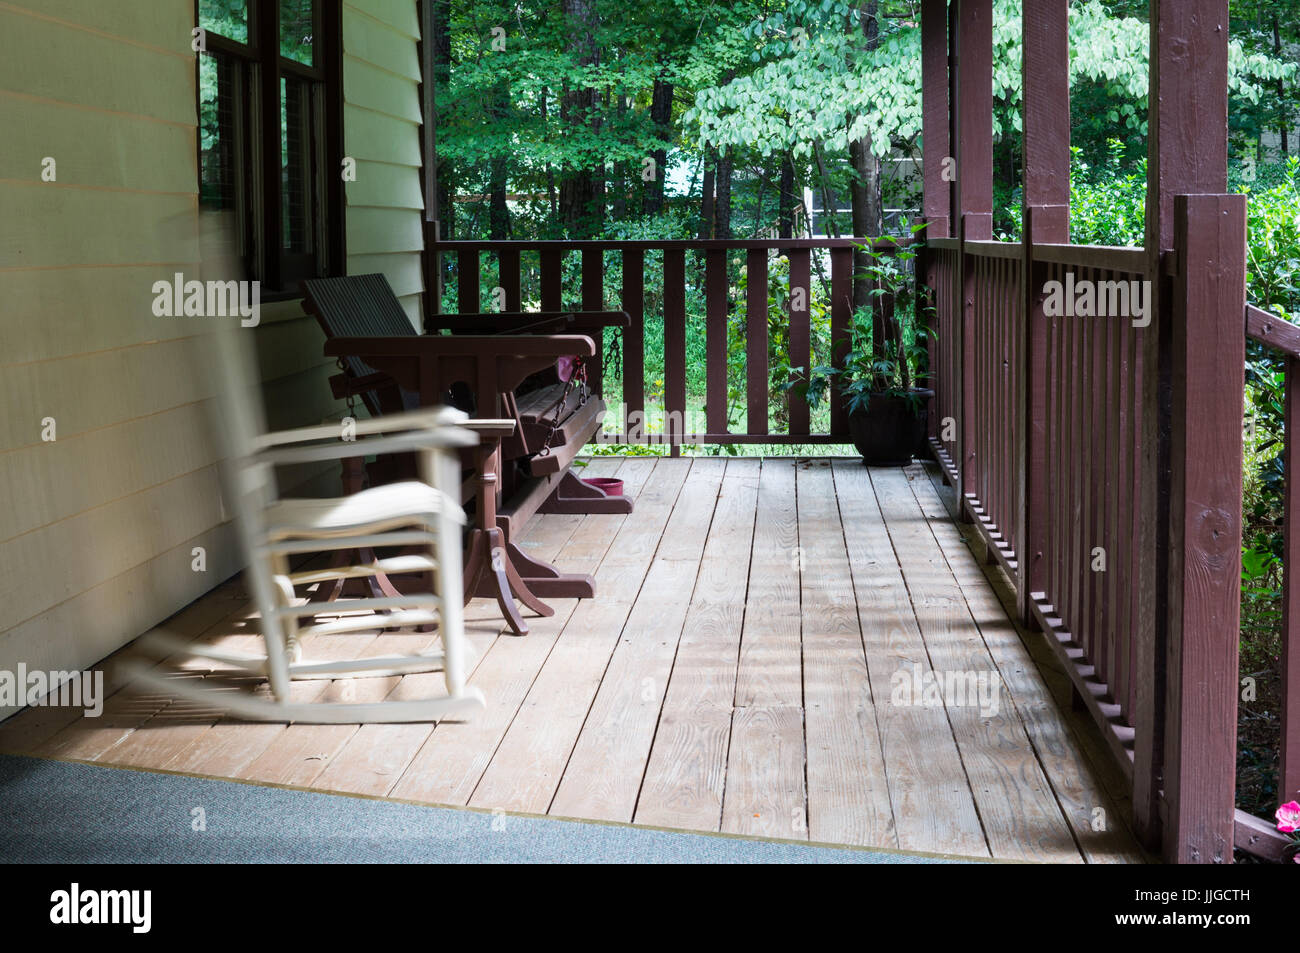 porch chair moving - Stock Image & Porch Chair Stock Photos u0026 Porch Chair Stock Images - Alamy